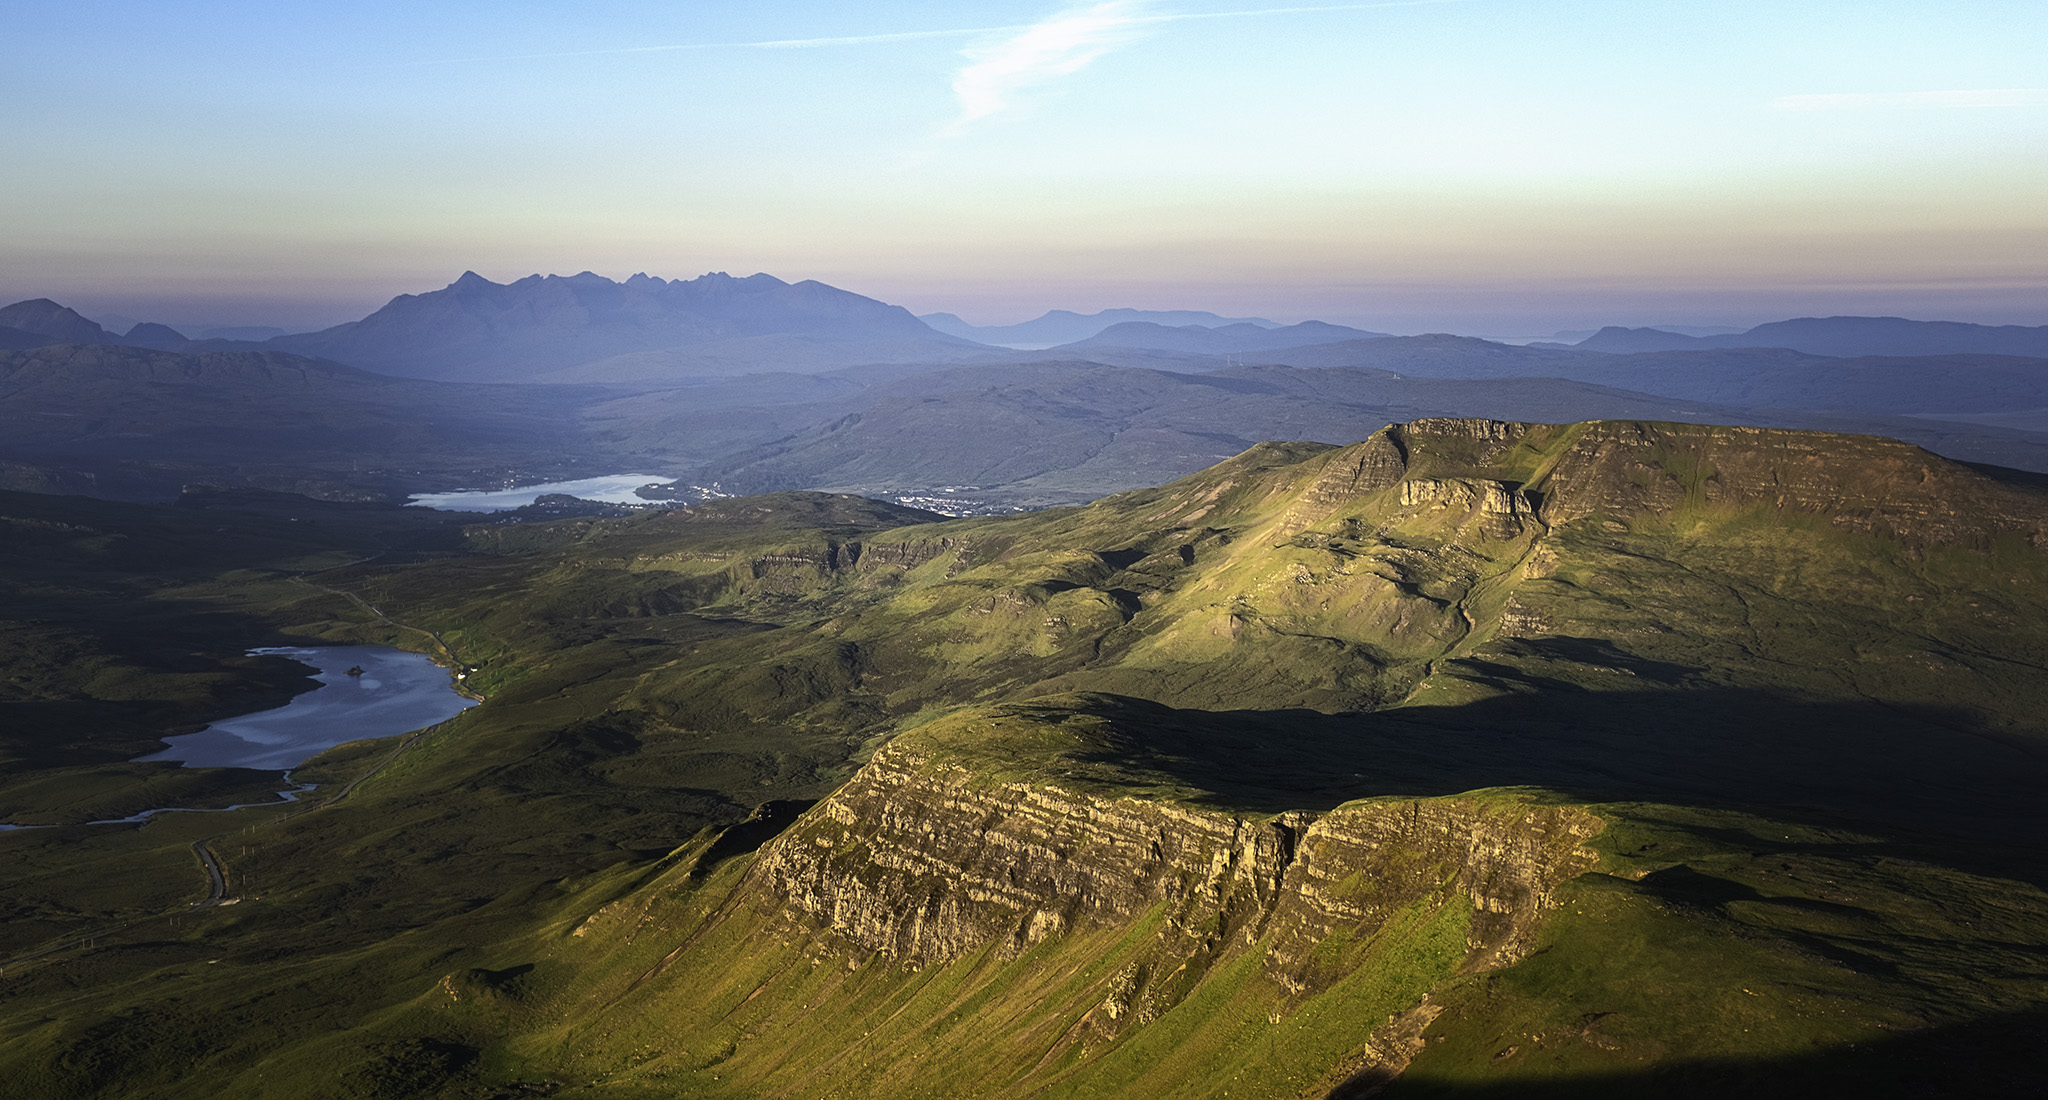 The Cullins seen from the Storr, United Kingdom